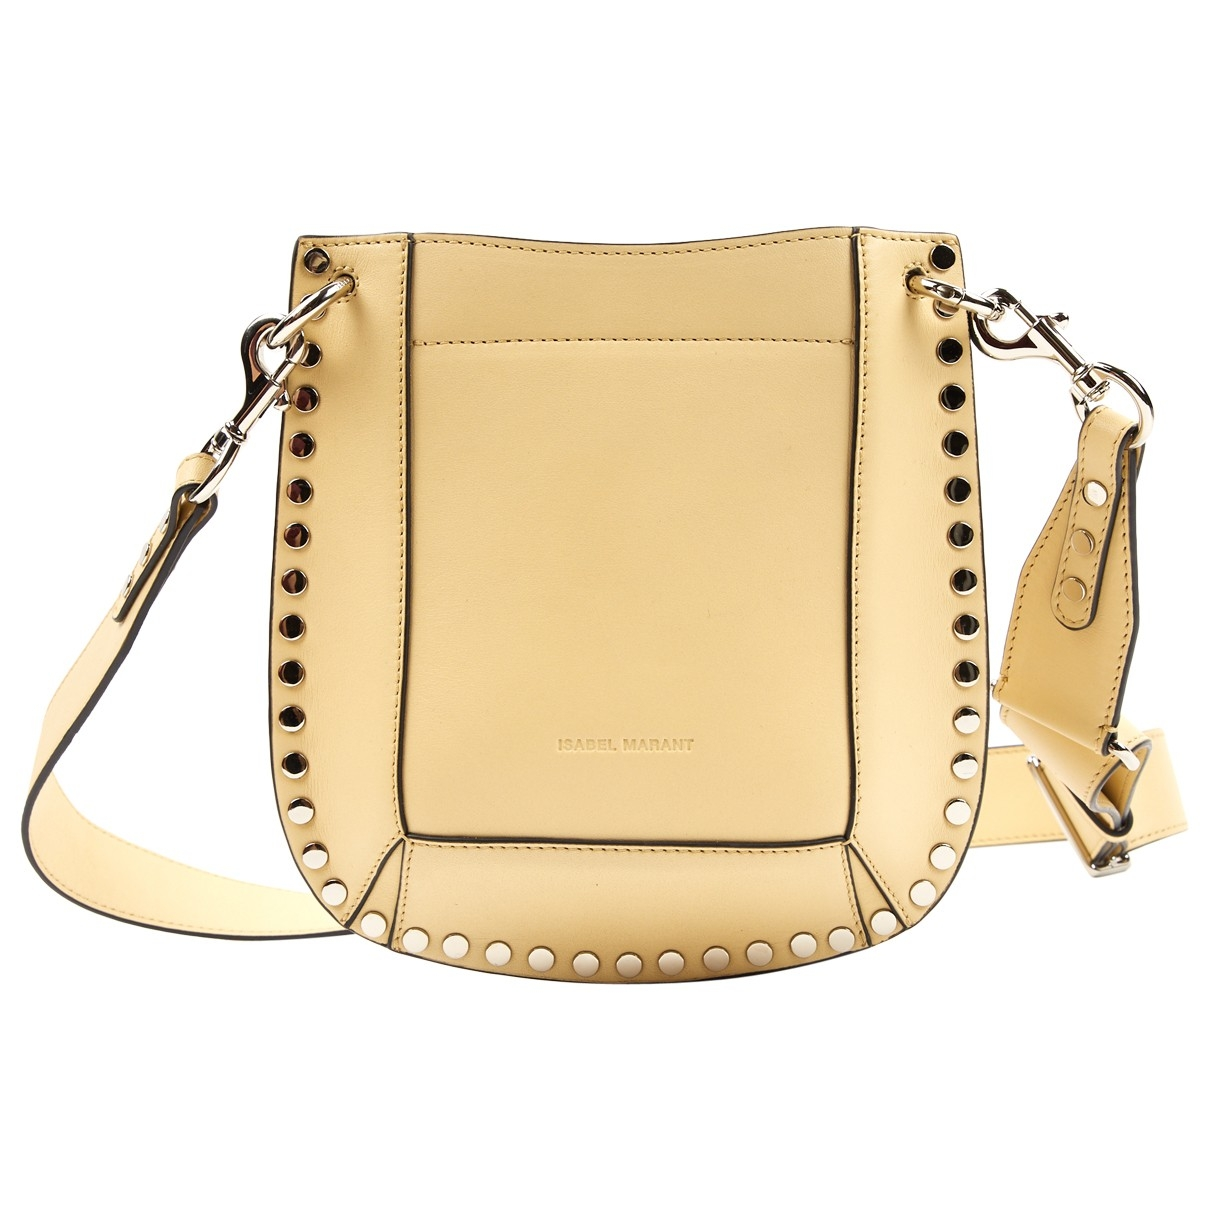 Isabel Marant \N Yellow Leather handbag for Women \N